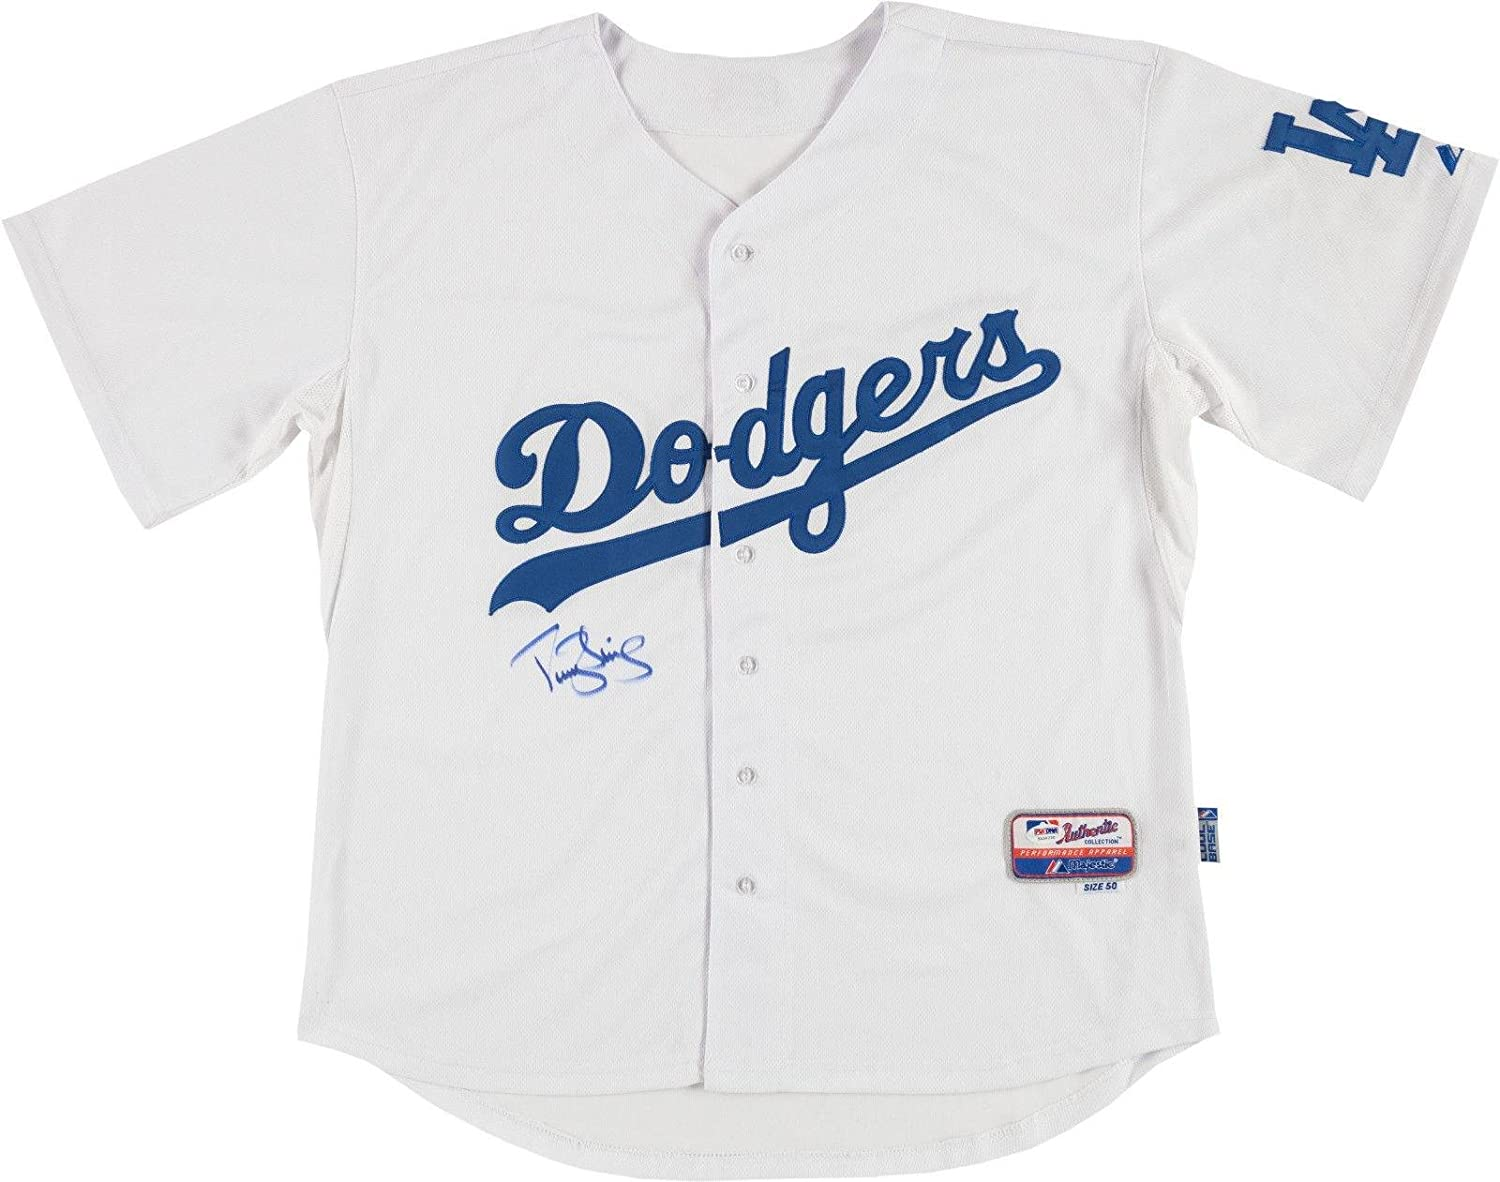 Autographed Darryl Strawberry Jersey - Los Angeles La Dodgers Ny Yankees Sf  Giants - Autographed MLB Jerseys at Amazon s Sports Collectibles Store af2eb1e58c5